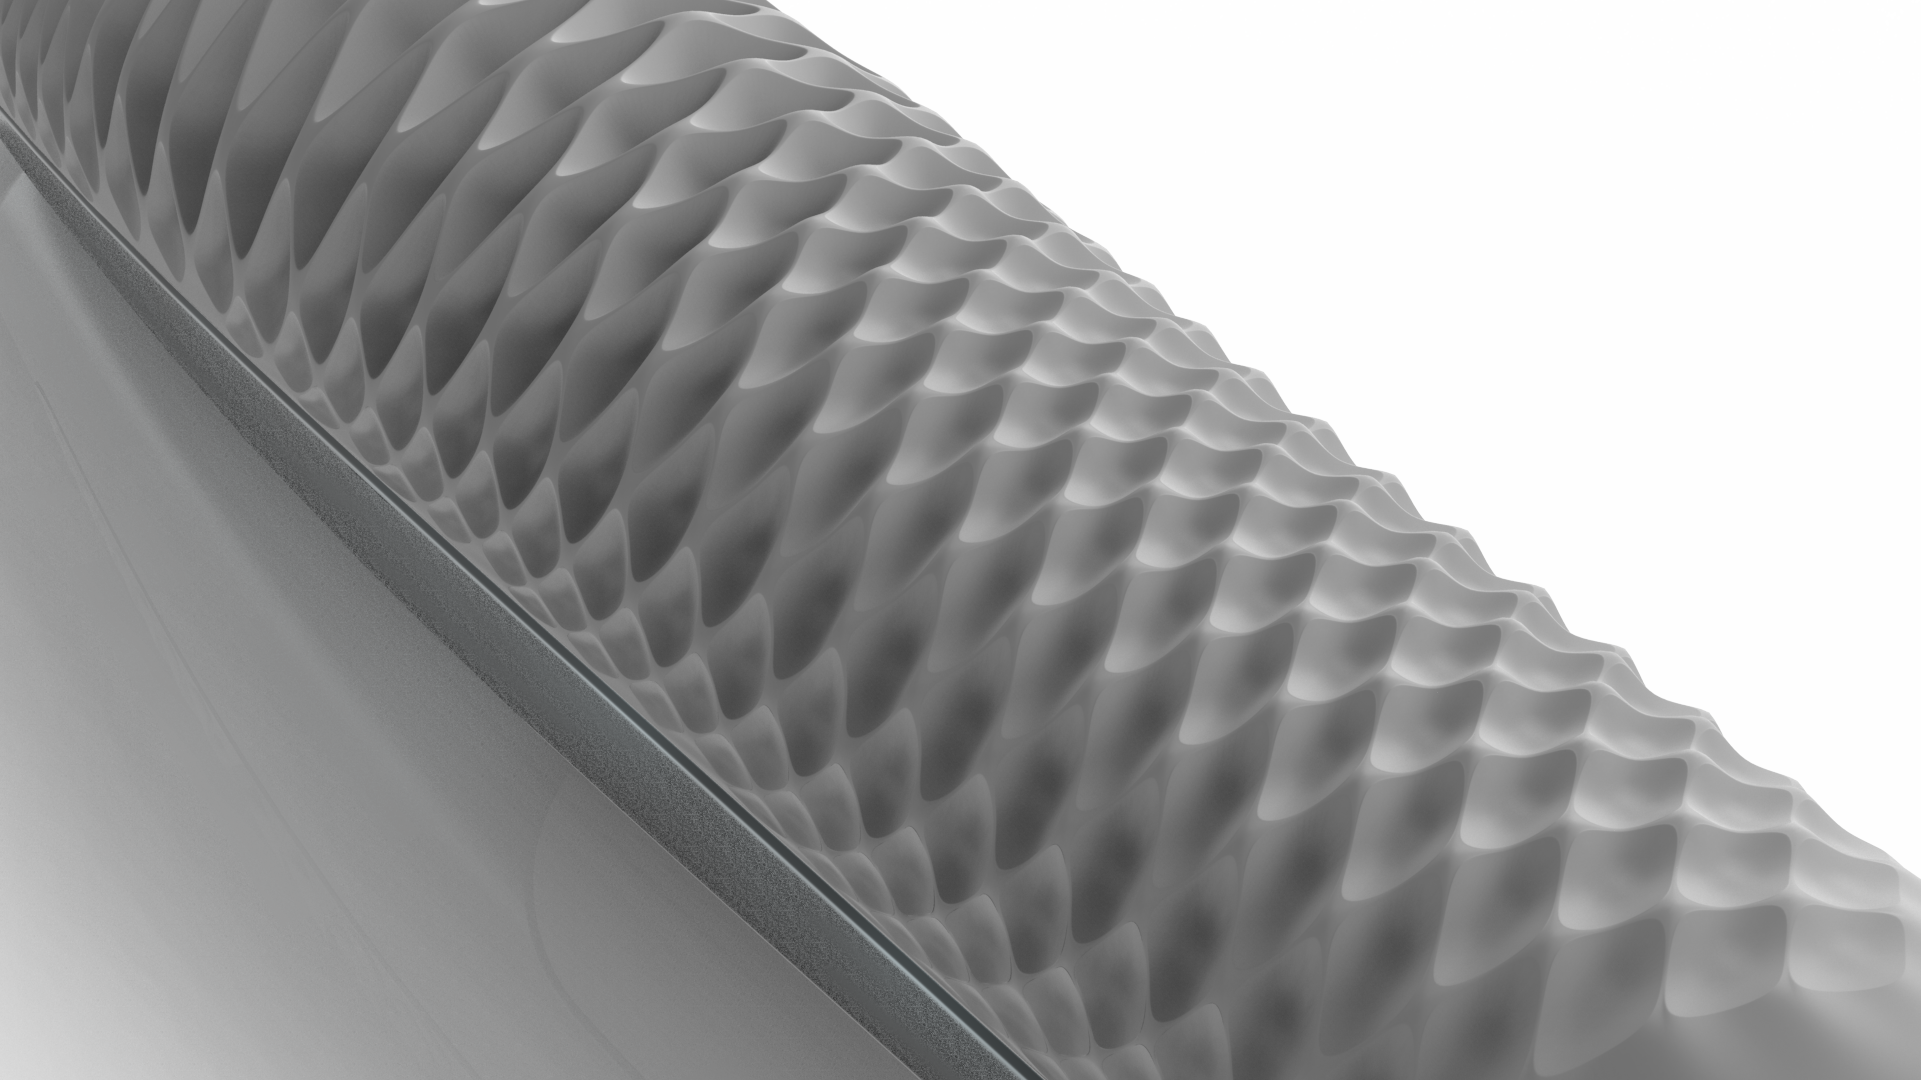 Validating texture profile fit and performance through rapid prototyping.